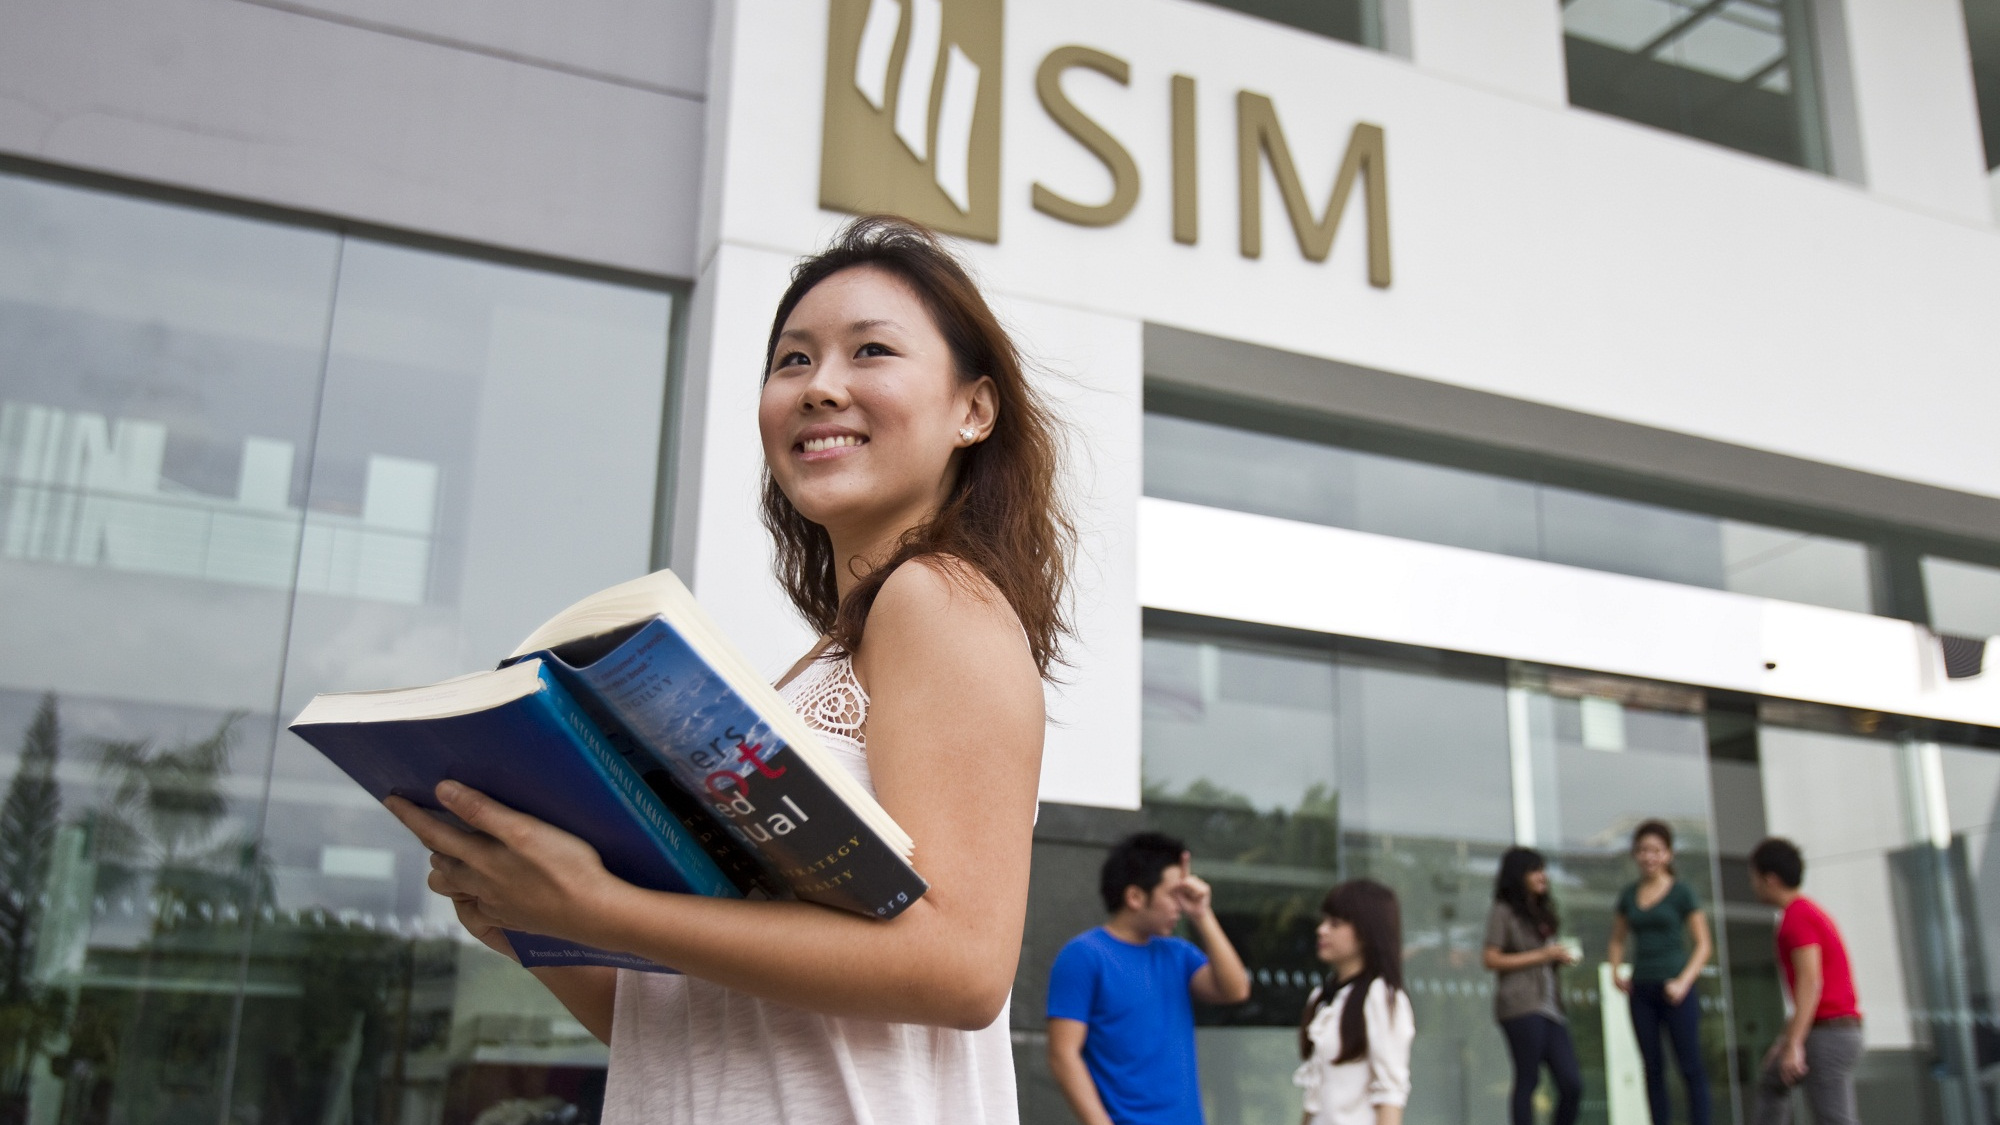 SIM student outside of her teaching institution